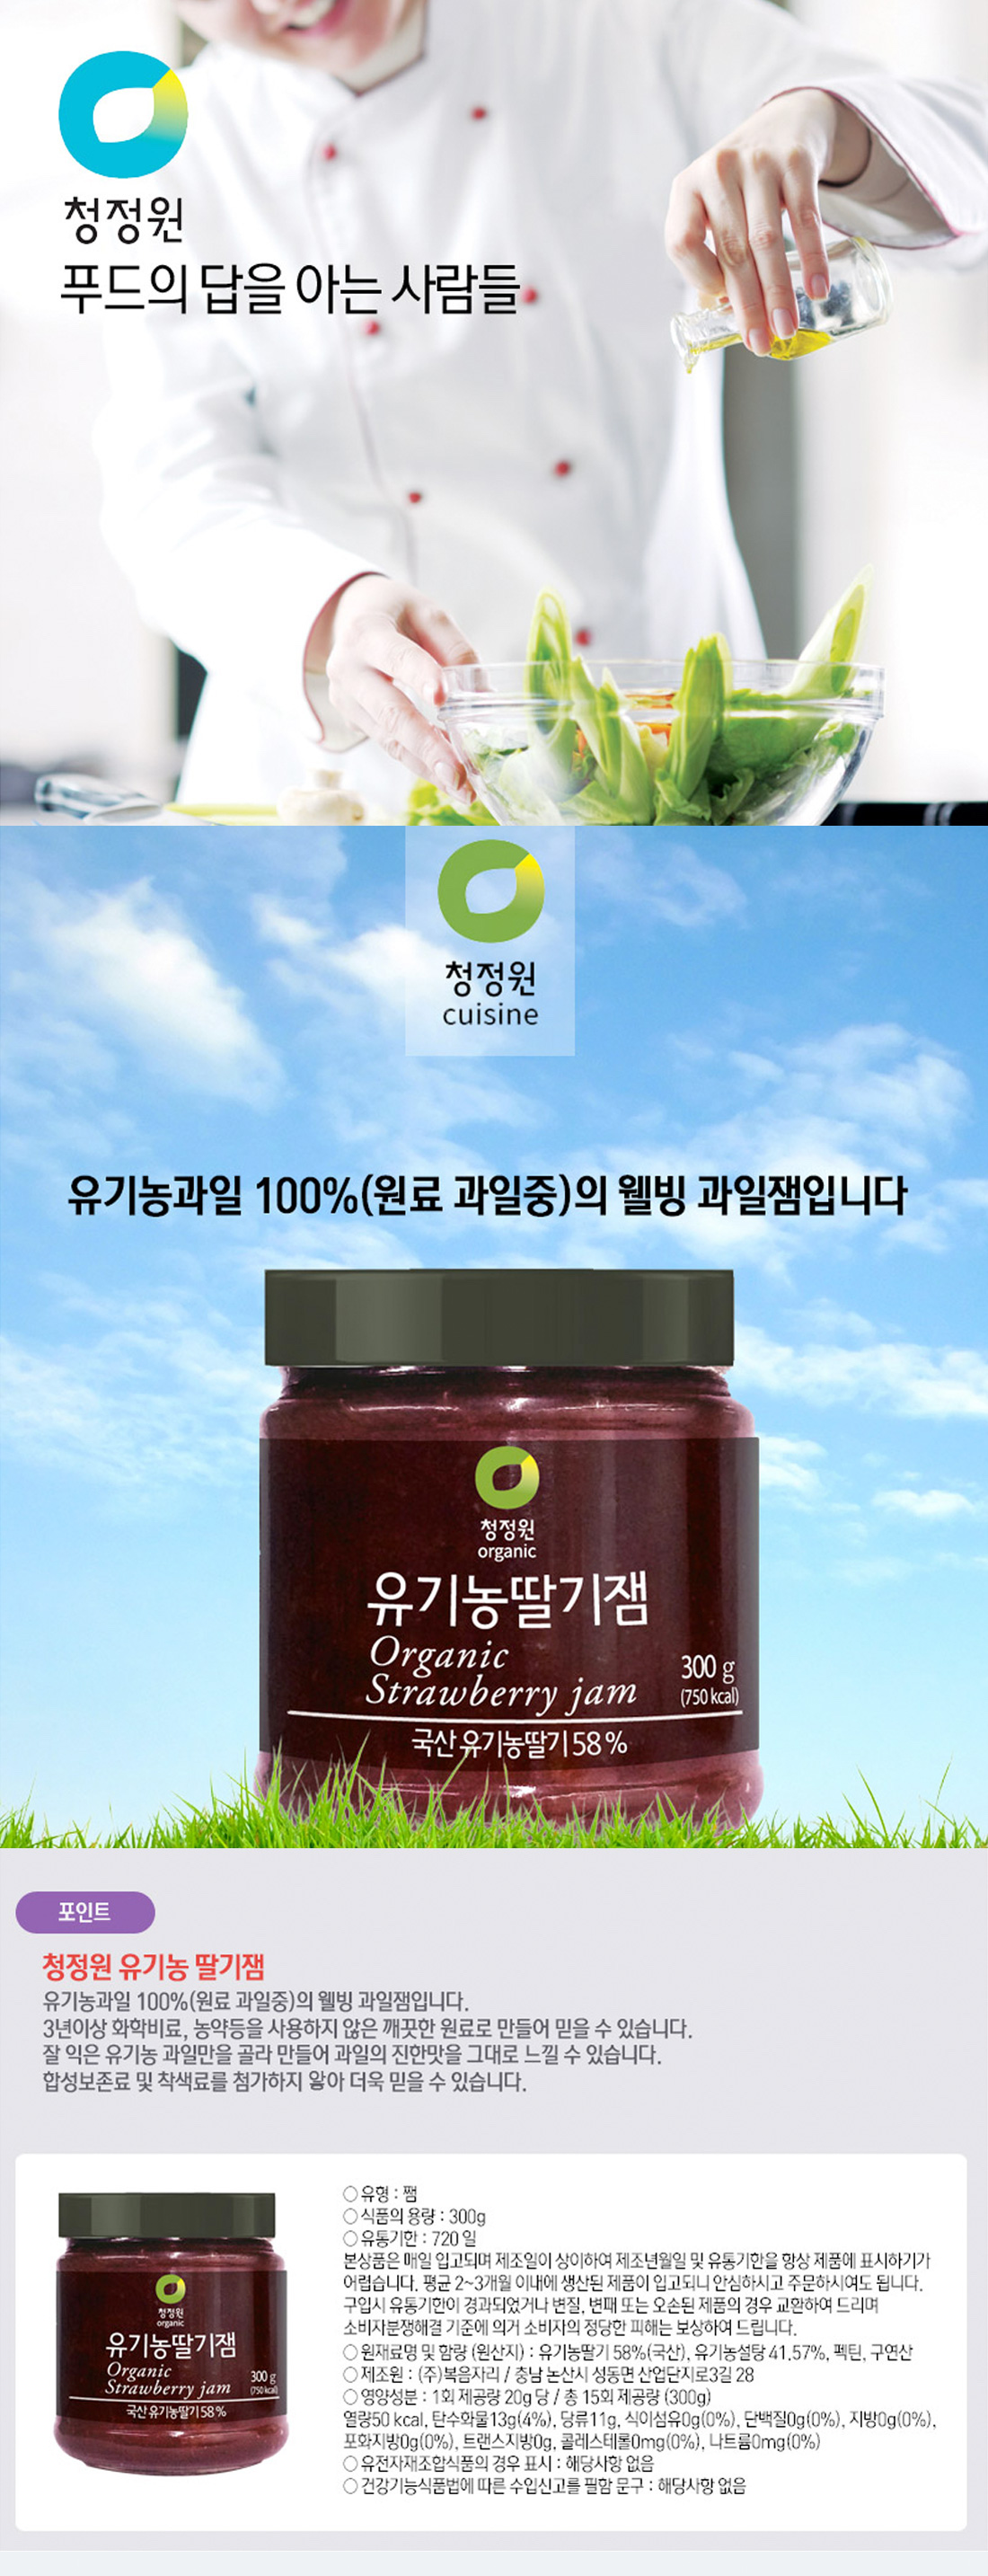 [ chungjungone ] ORGANIC STRAWBERRY JAM 300g X 4pcs